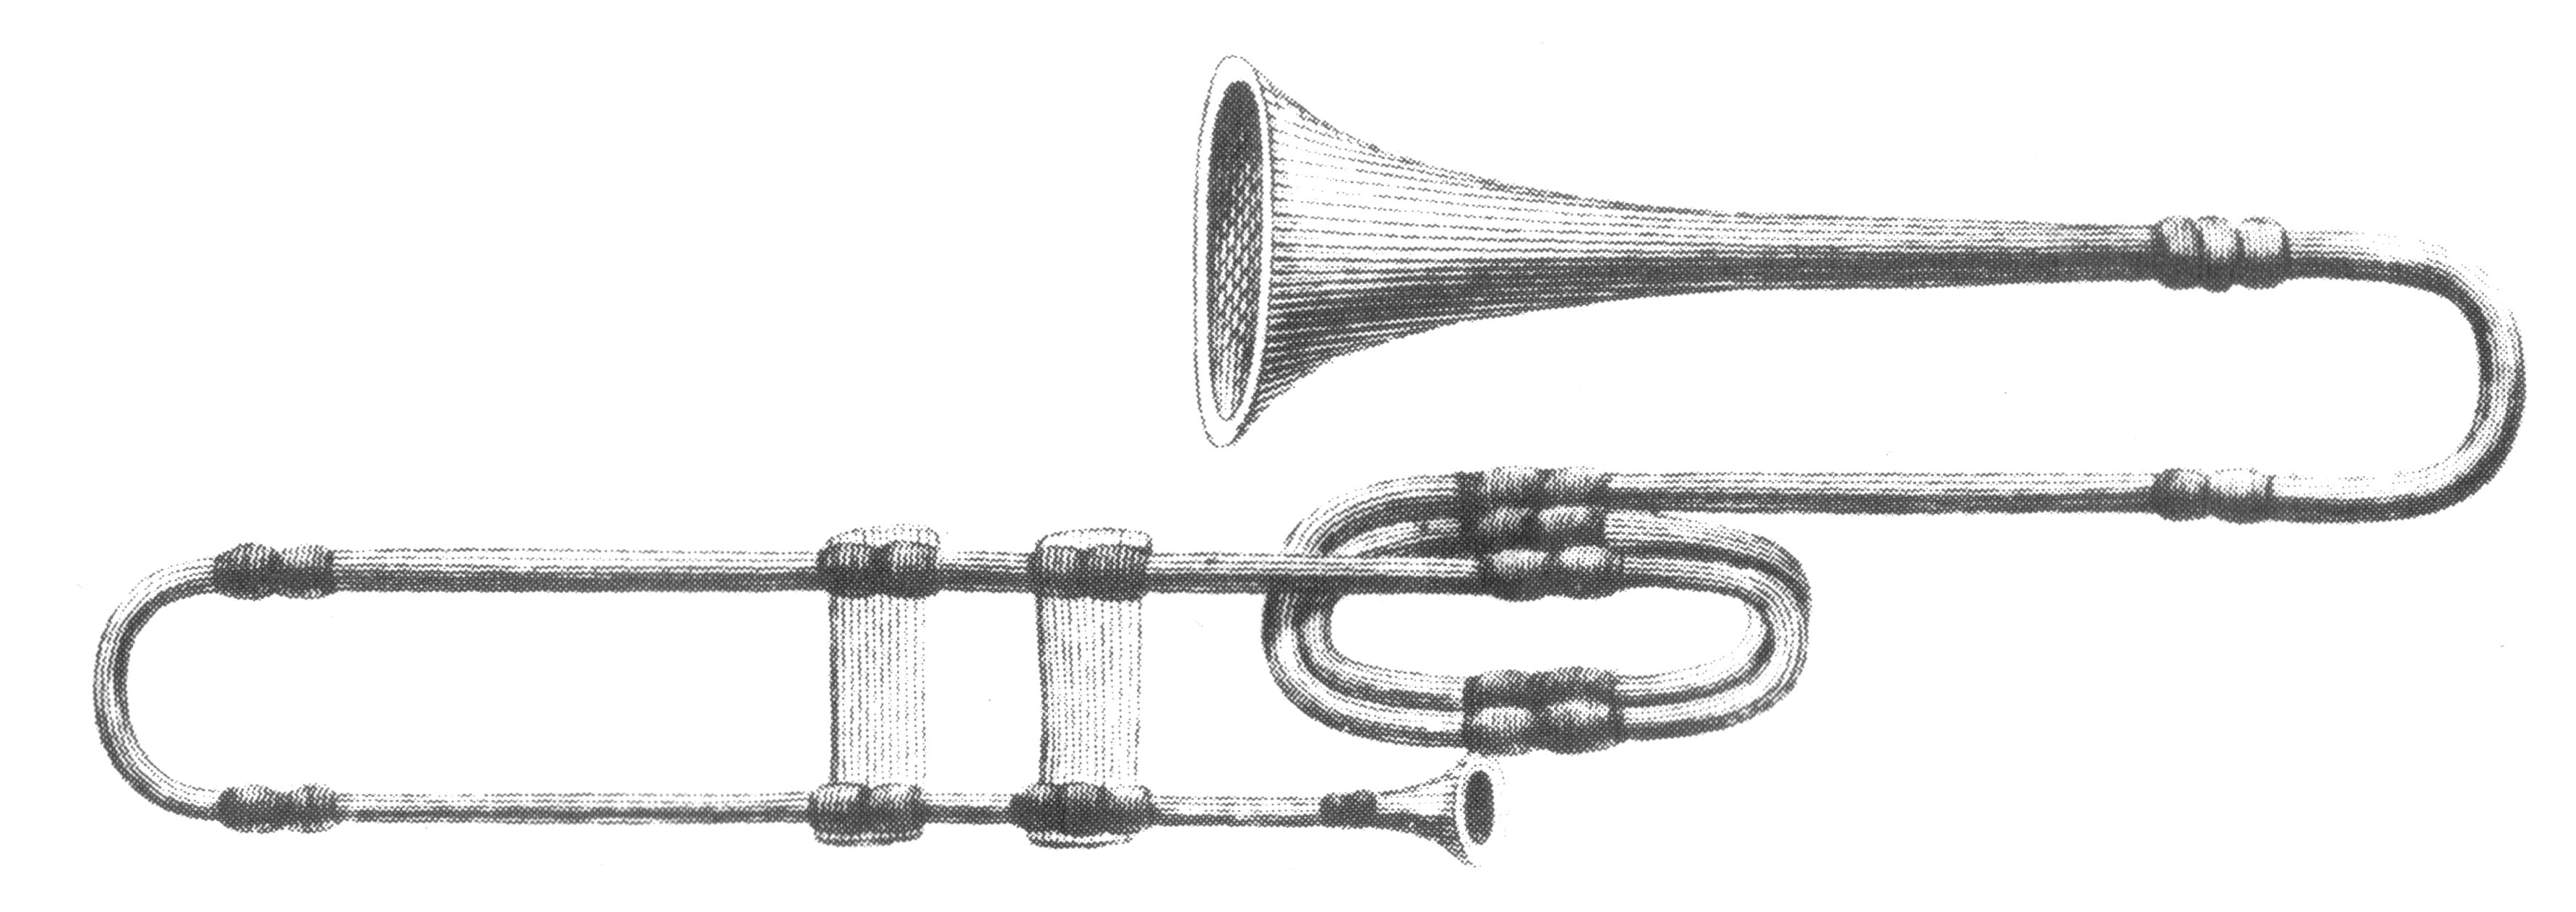 1000 images about aer211fonos on pinterest oboe horns